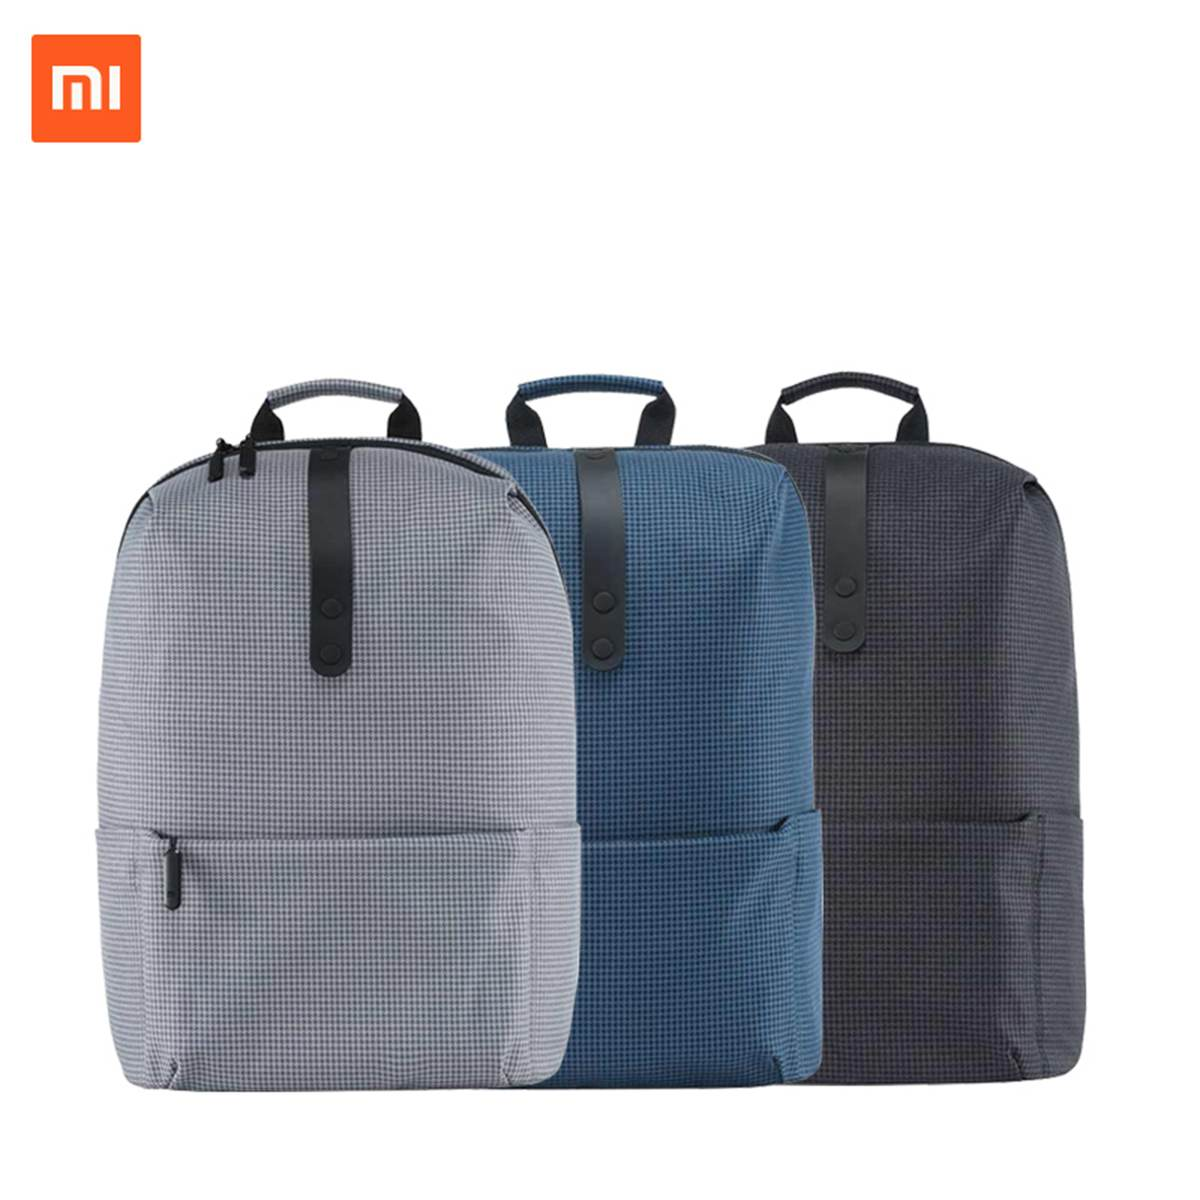 Xiaomi Fashion Backpack 15.6 <font><b>Inch</b></font> 20L College Style School <font><b>Bag</b></font> <font><b>Laptop</b></font> Computer Backpack for Women Men Boy Girl image